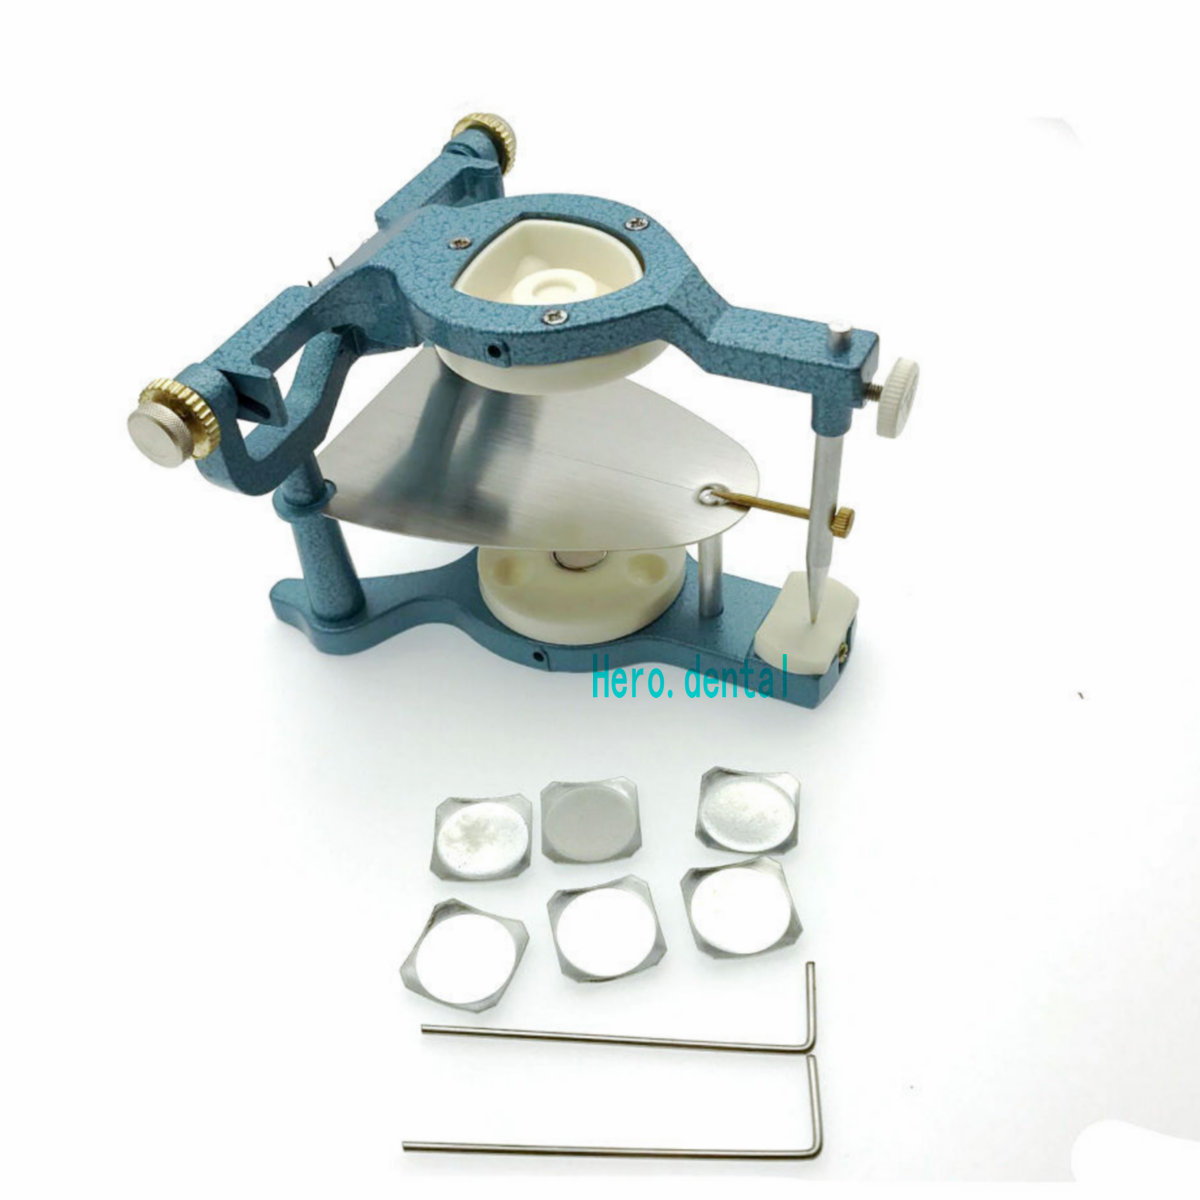 Uso di Laboratorio Dentale dentista Big Regolabile Articulator MagneticoUso di Laboratorio Dentale dentista Big Regolabile Articulator Magnetico